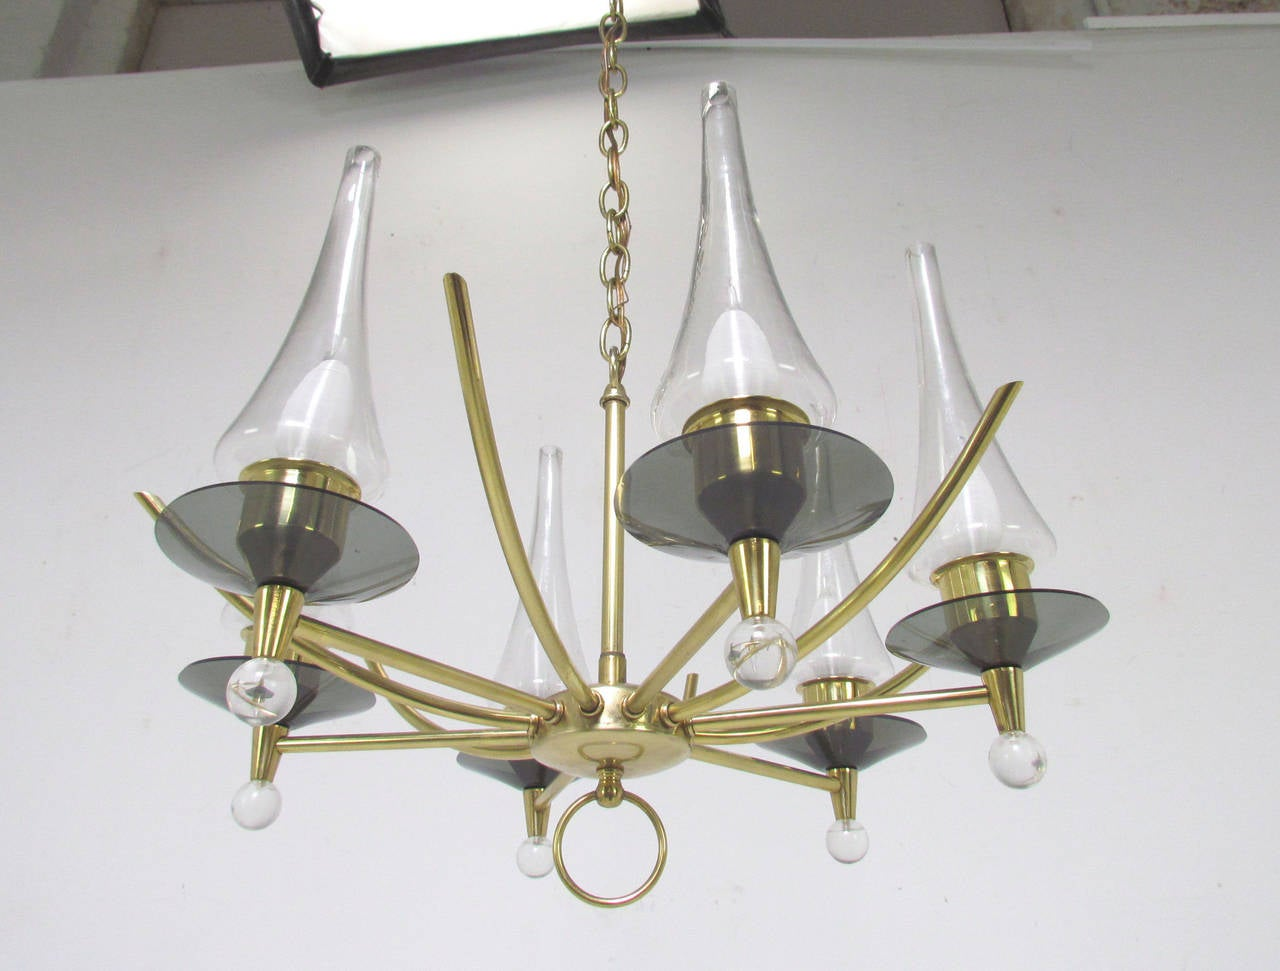 Mid-Century Modern Mid-Century Six-Arm Chandelier in Brass and Glass by Feldman Lighting Co For Sale